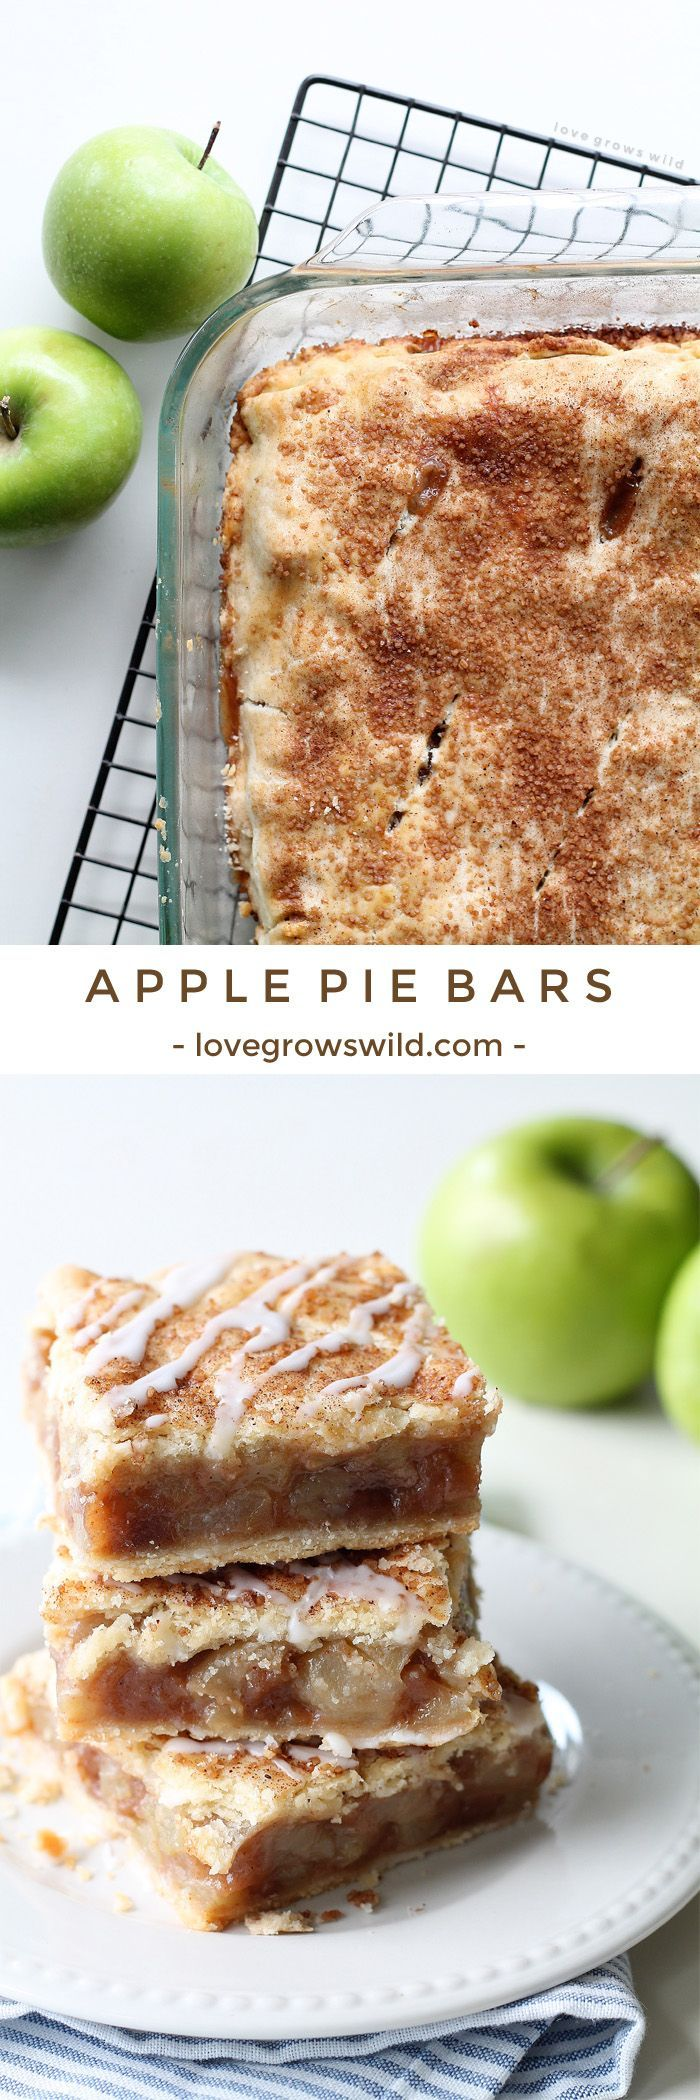 These Apple Pie Bars are the perfect handheld dessert and SO delicious! Made with a fresh apple filling, homemade crust, and sweet vanilla glaze! | http://LoveGrowsWild.com